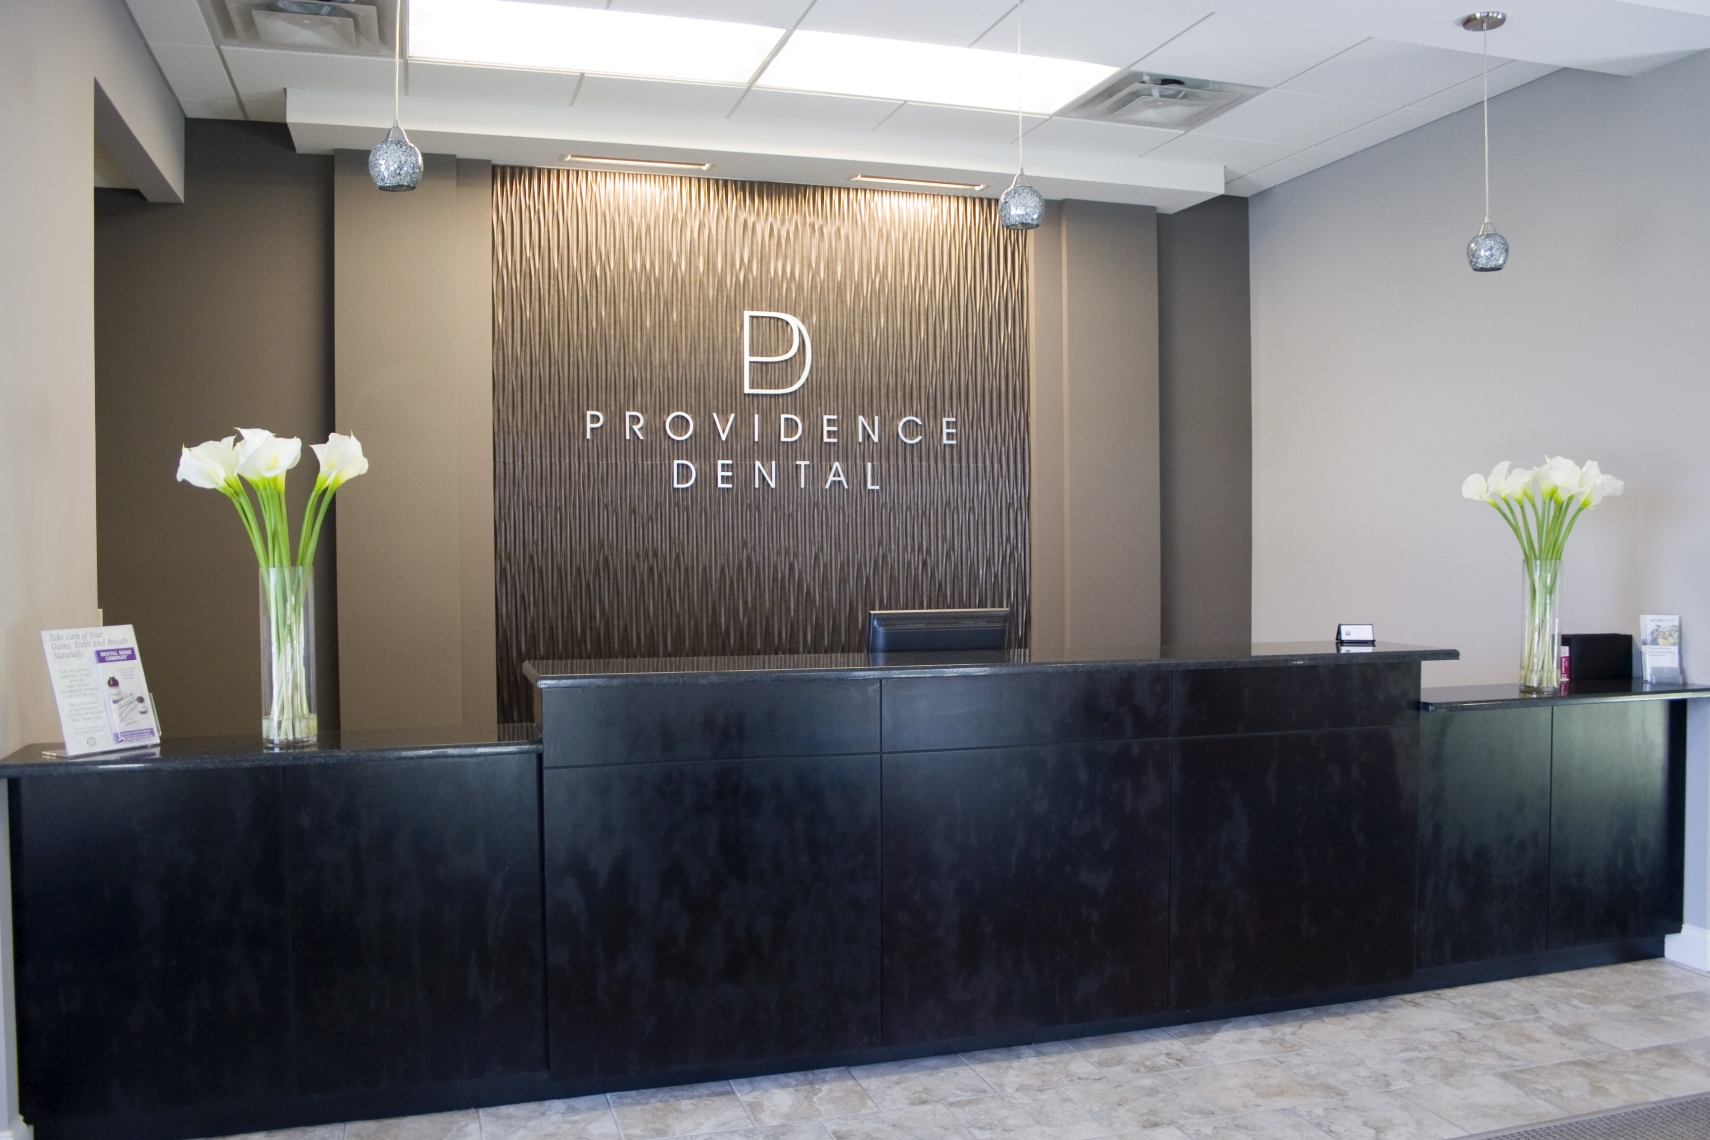 ProvidenceDental-3